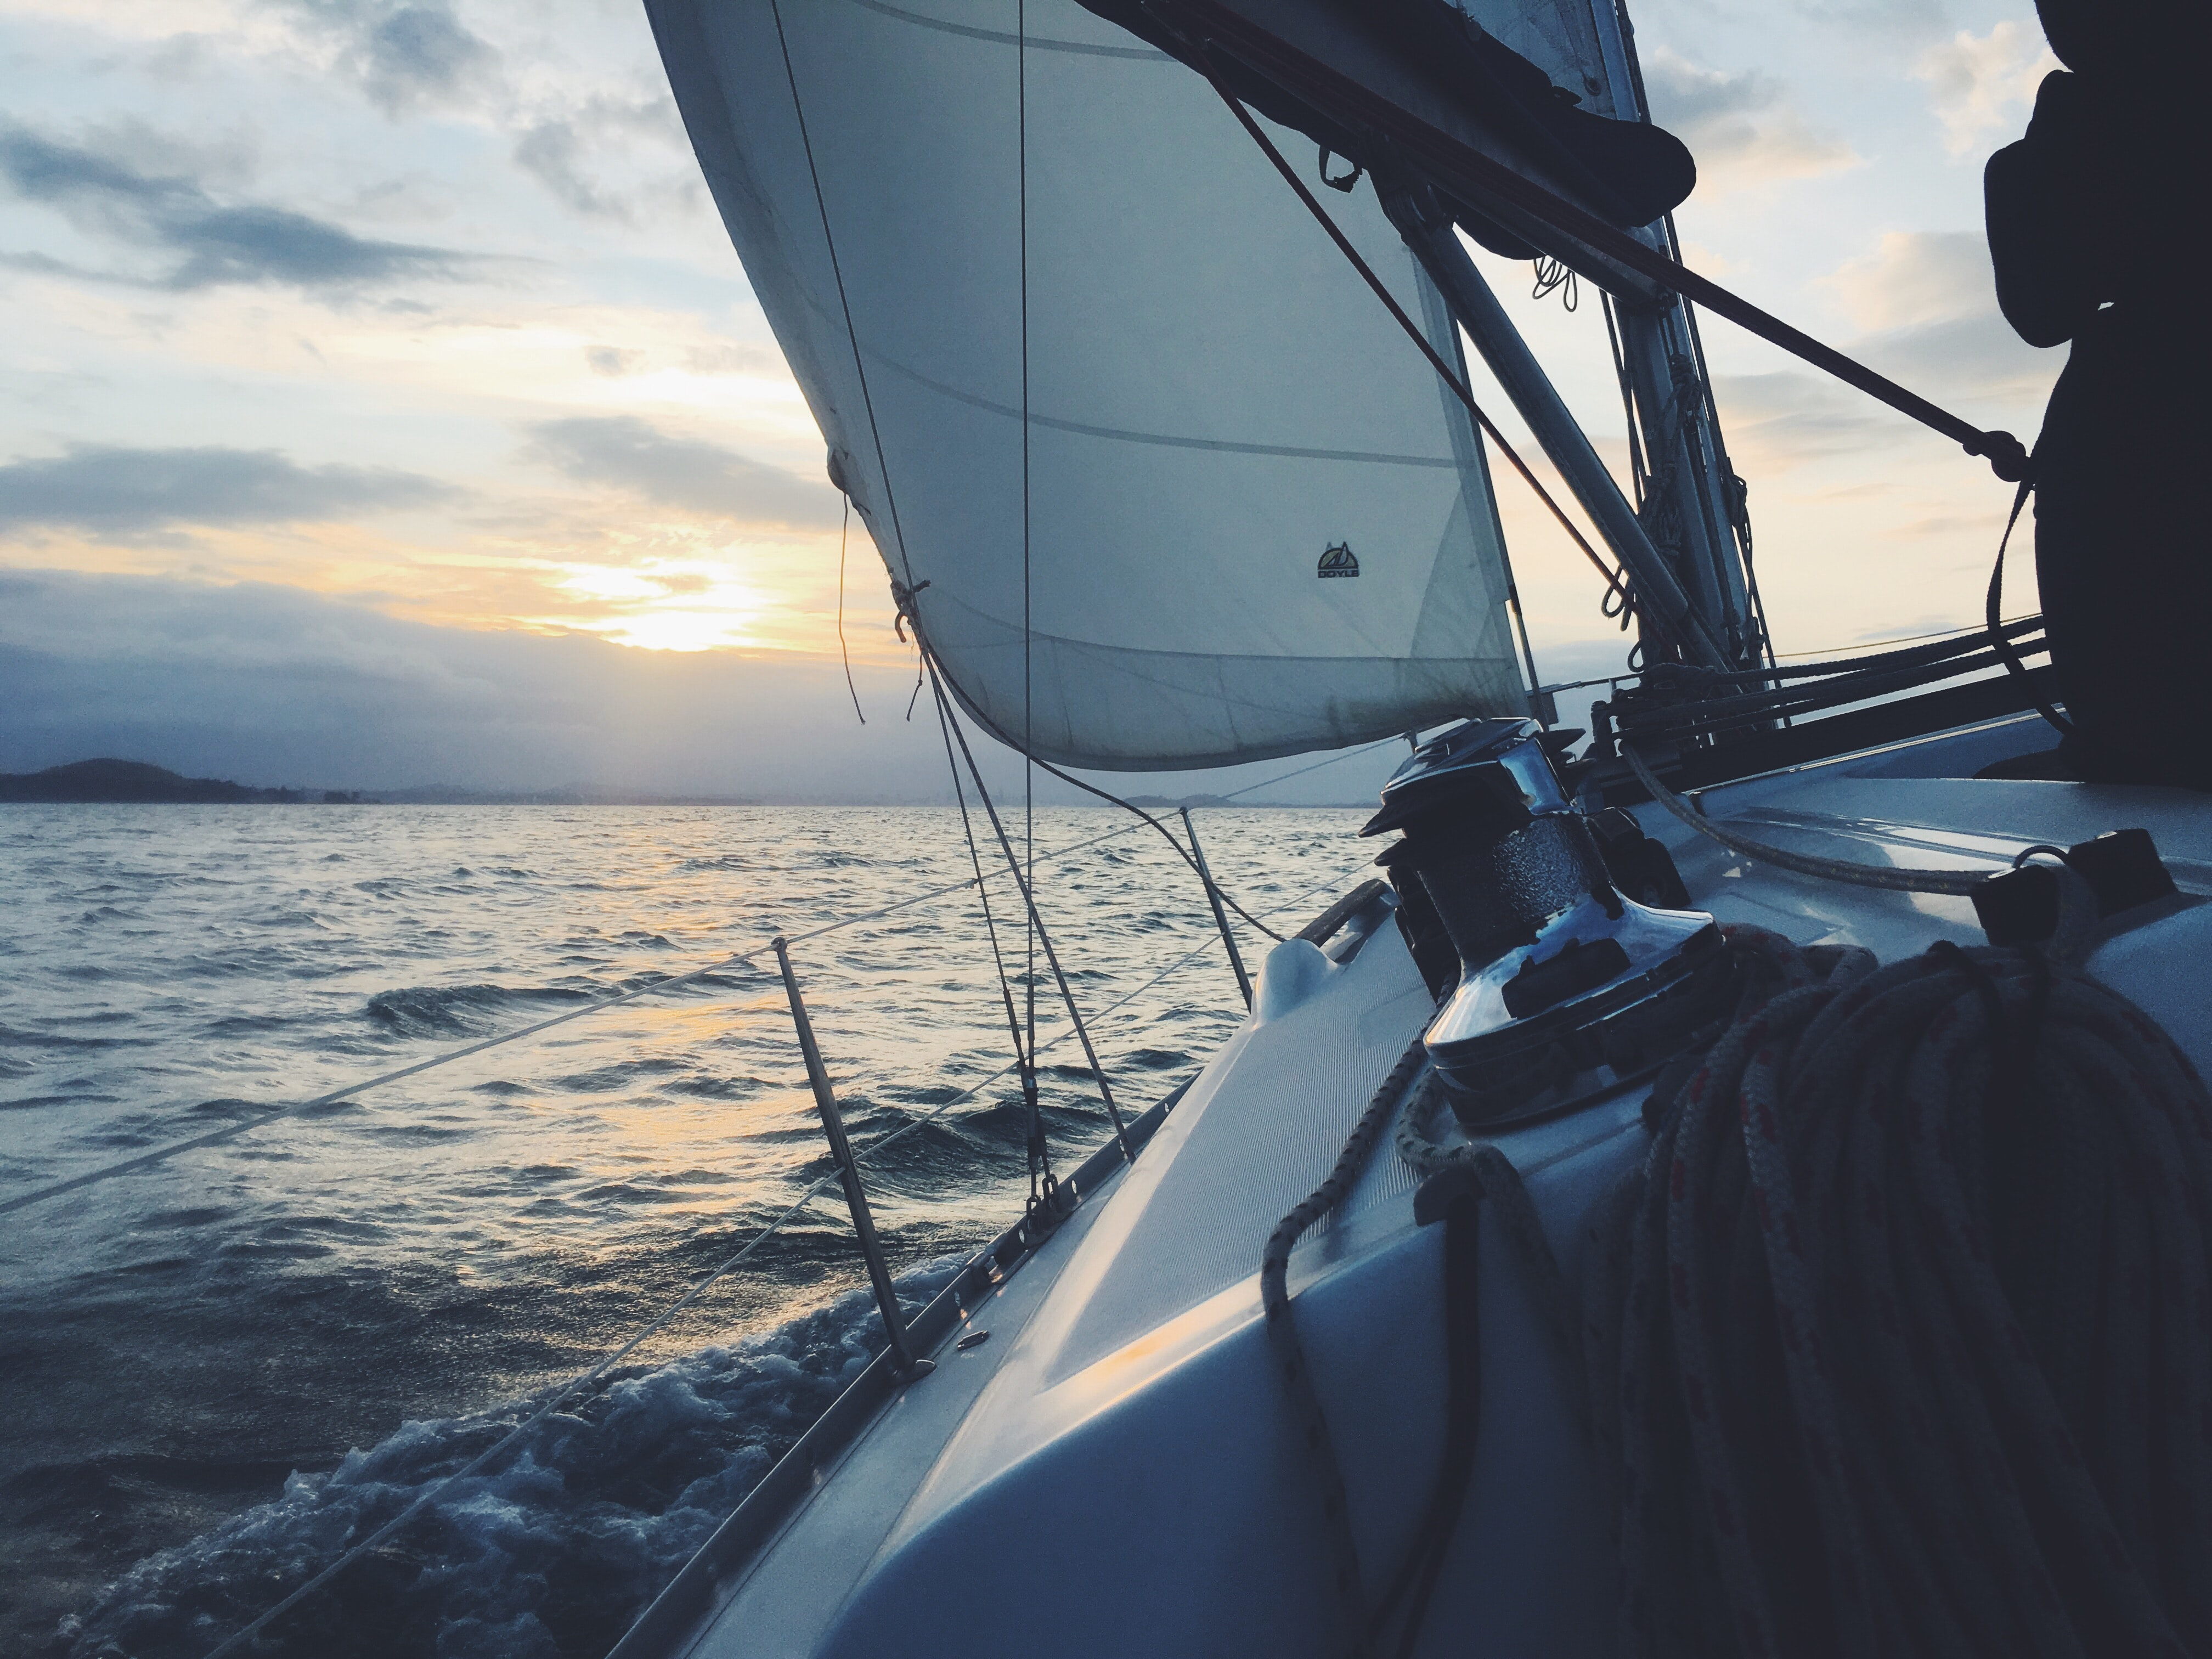 View from a sailing yacht on the choppy sea around at sunset